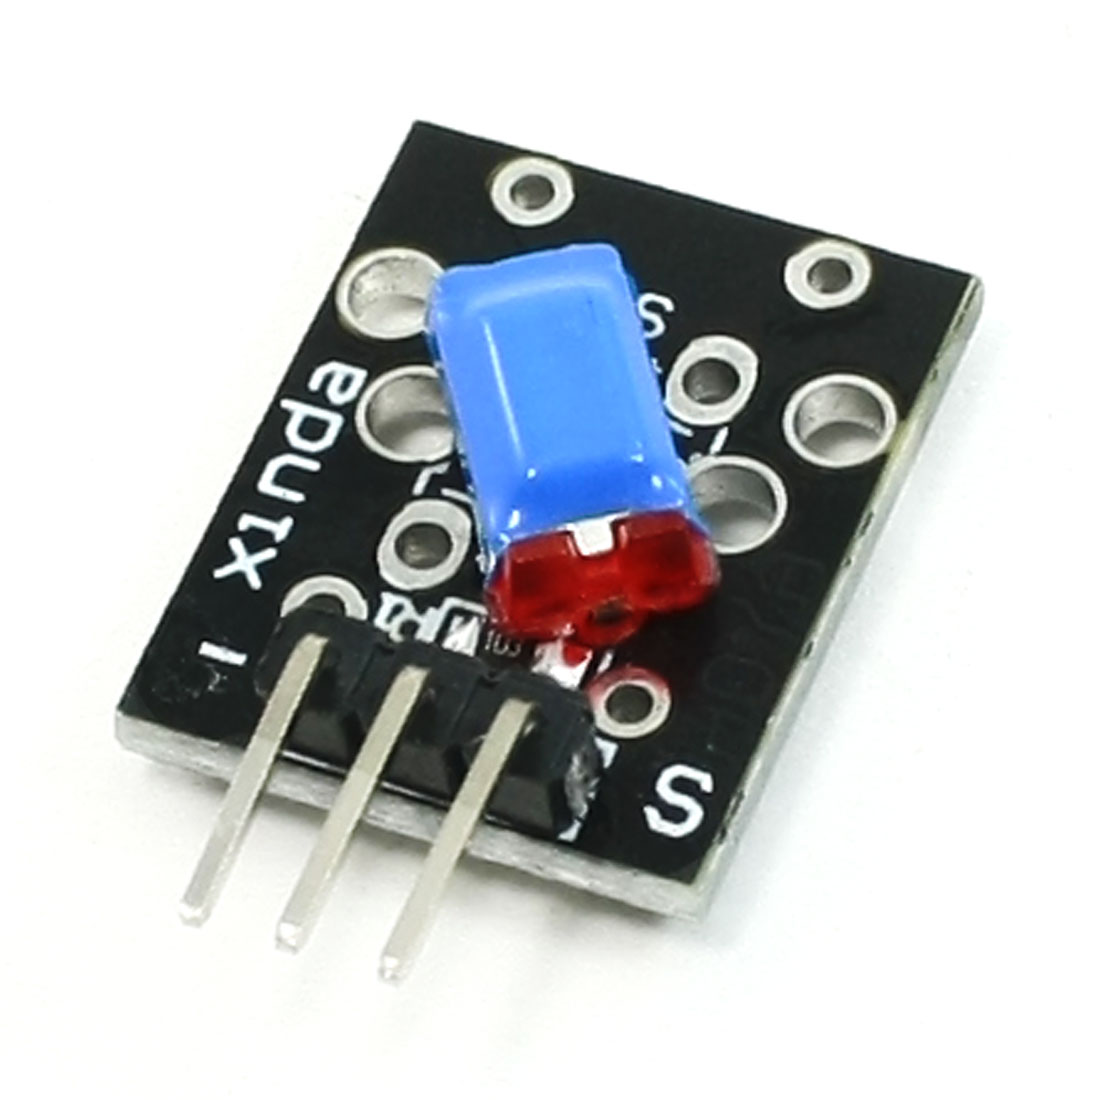 3.3V-5V DC Tilt Switch Sensor Module Board for Arduino